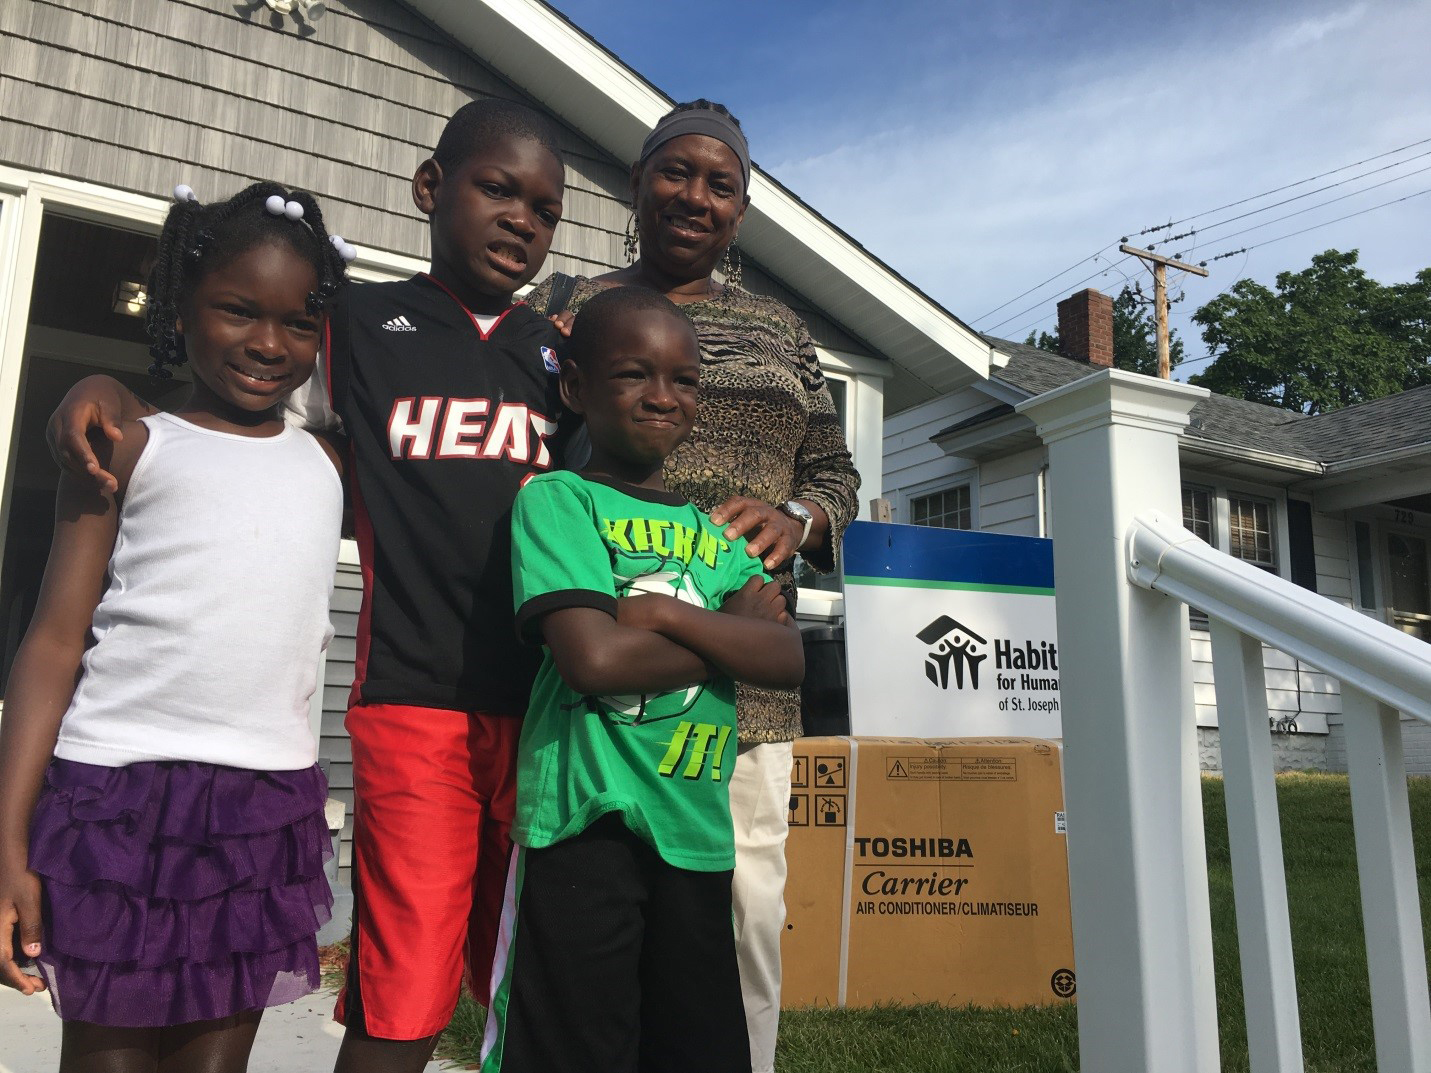 Christina and her grandchildren stand outside their South Bend, Indiana home as technicians install their Carrier ductless home comfort system. Christina moved into her Habitat for Humanity home this summer and received one of more than 500 ductless home comfort systems donated by Carrier to Habitat for Humanity.